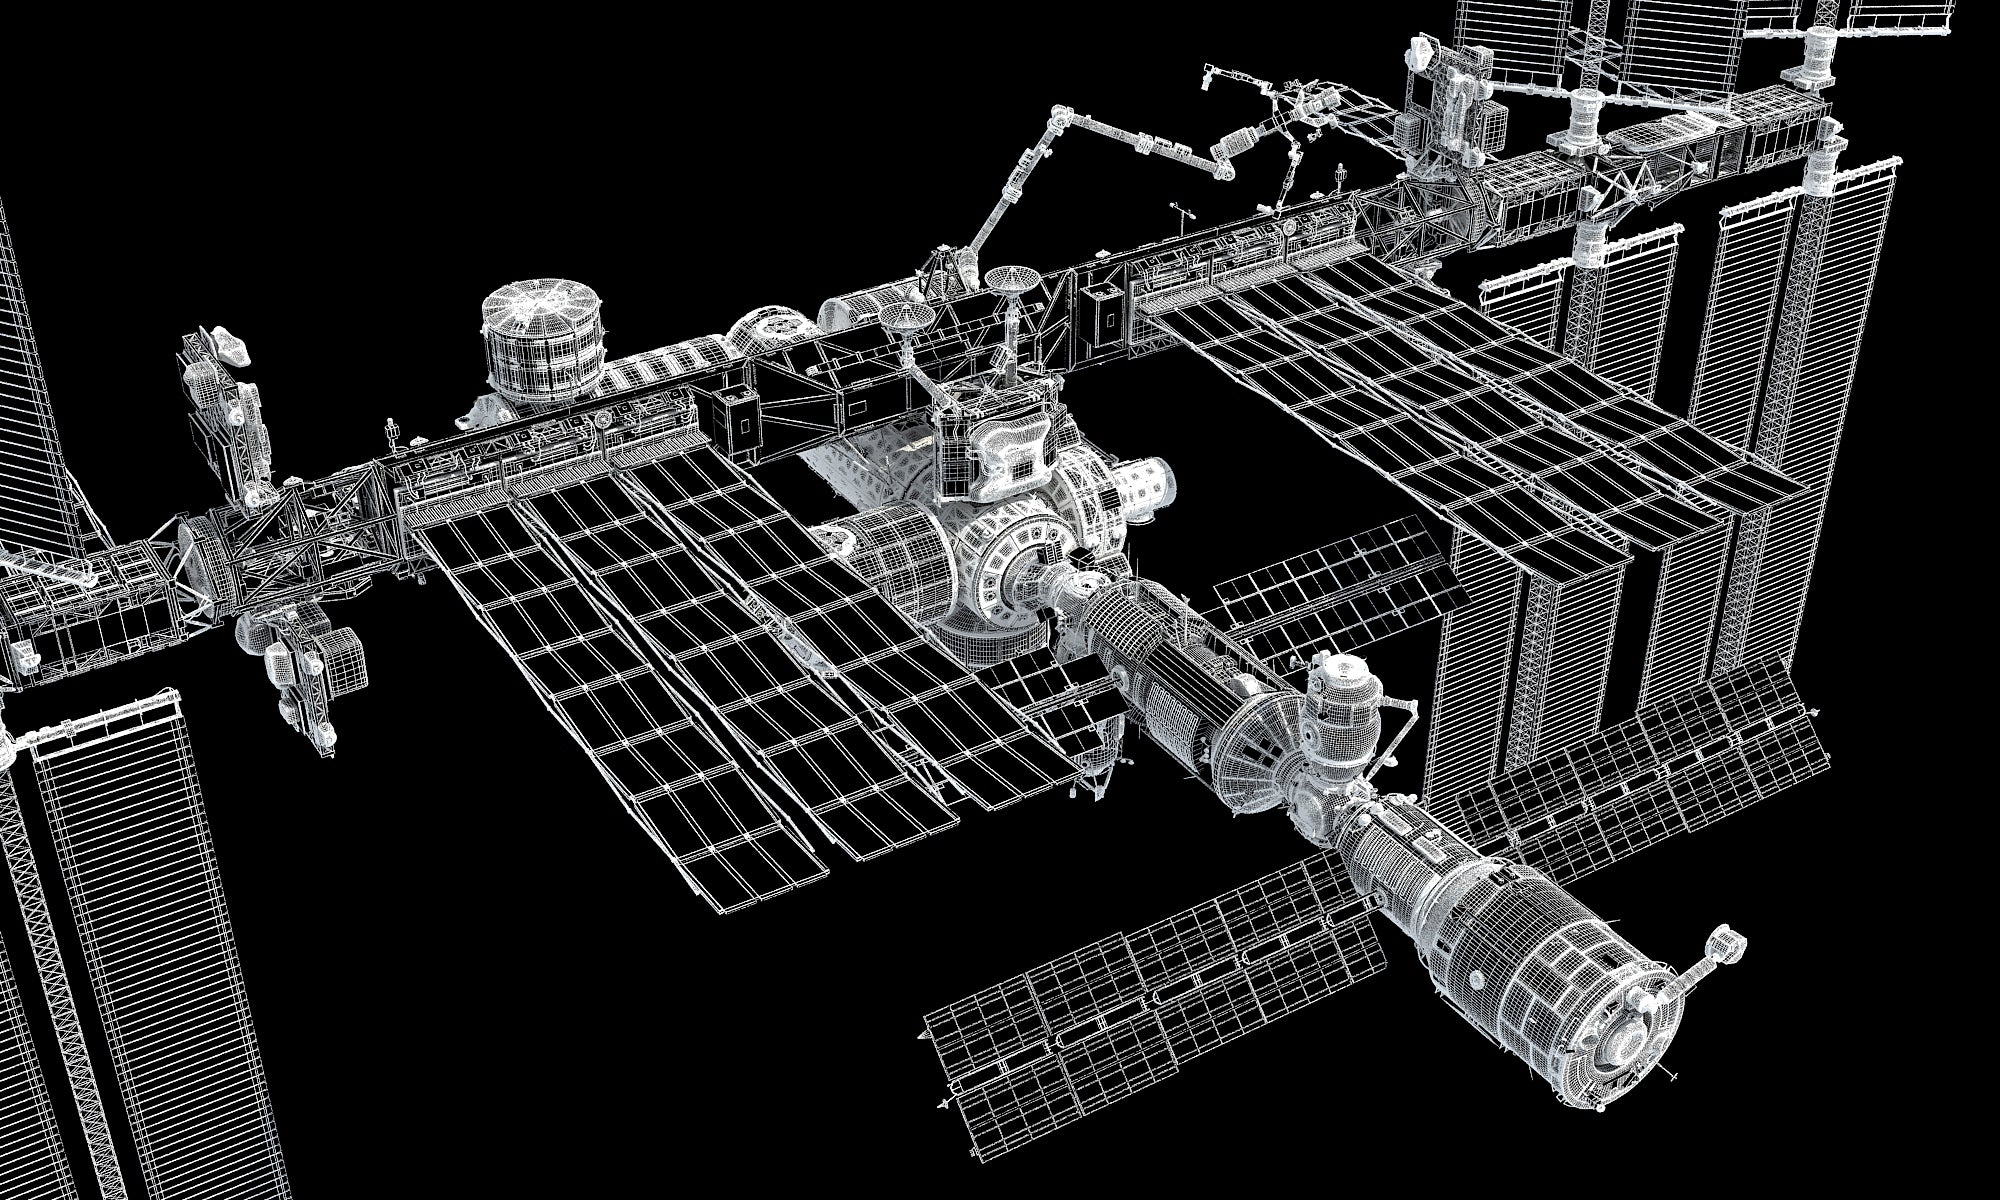 3D ISS International Space Station models